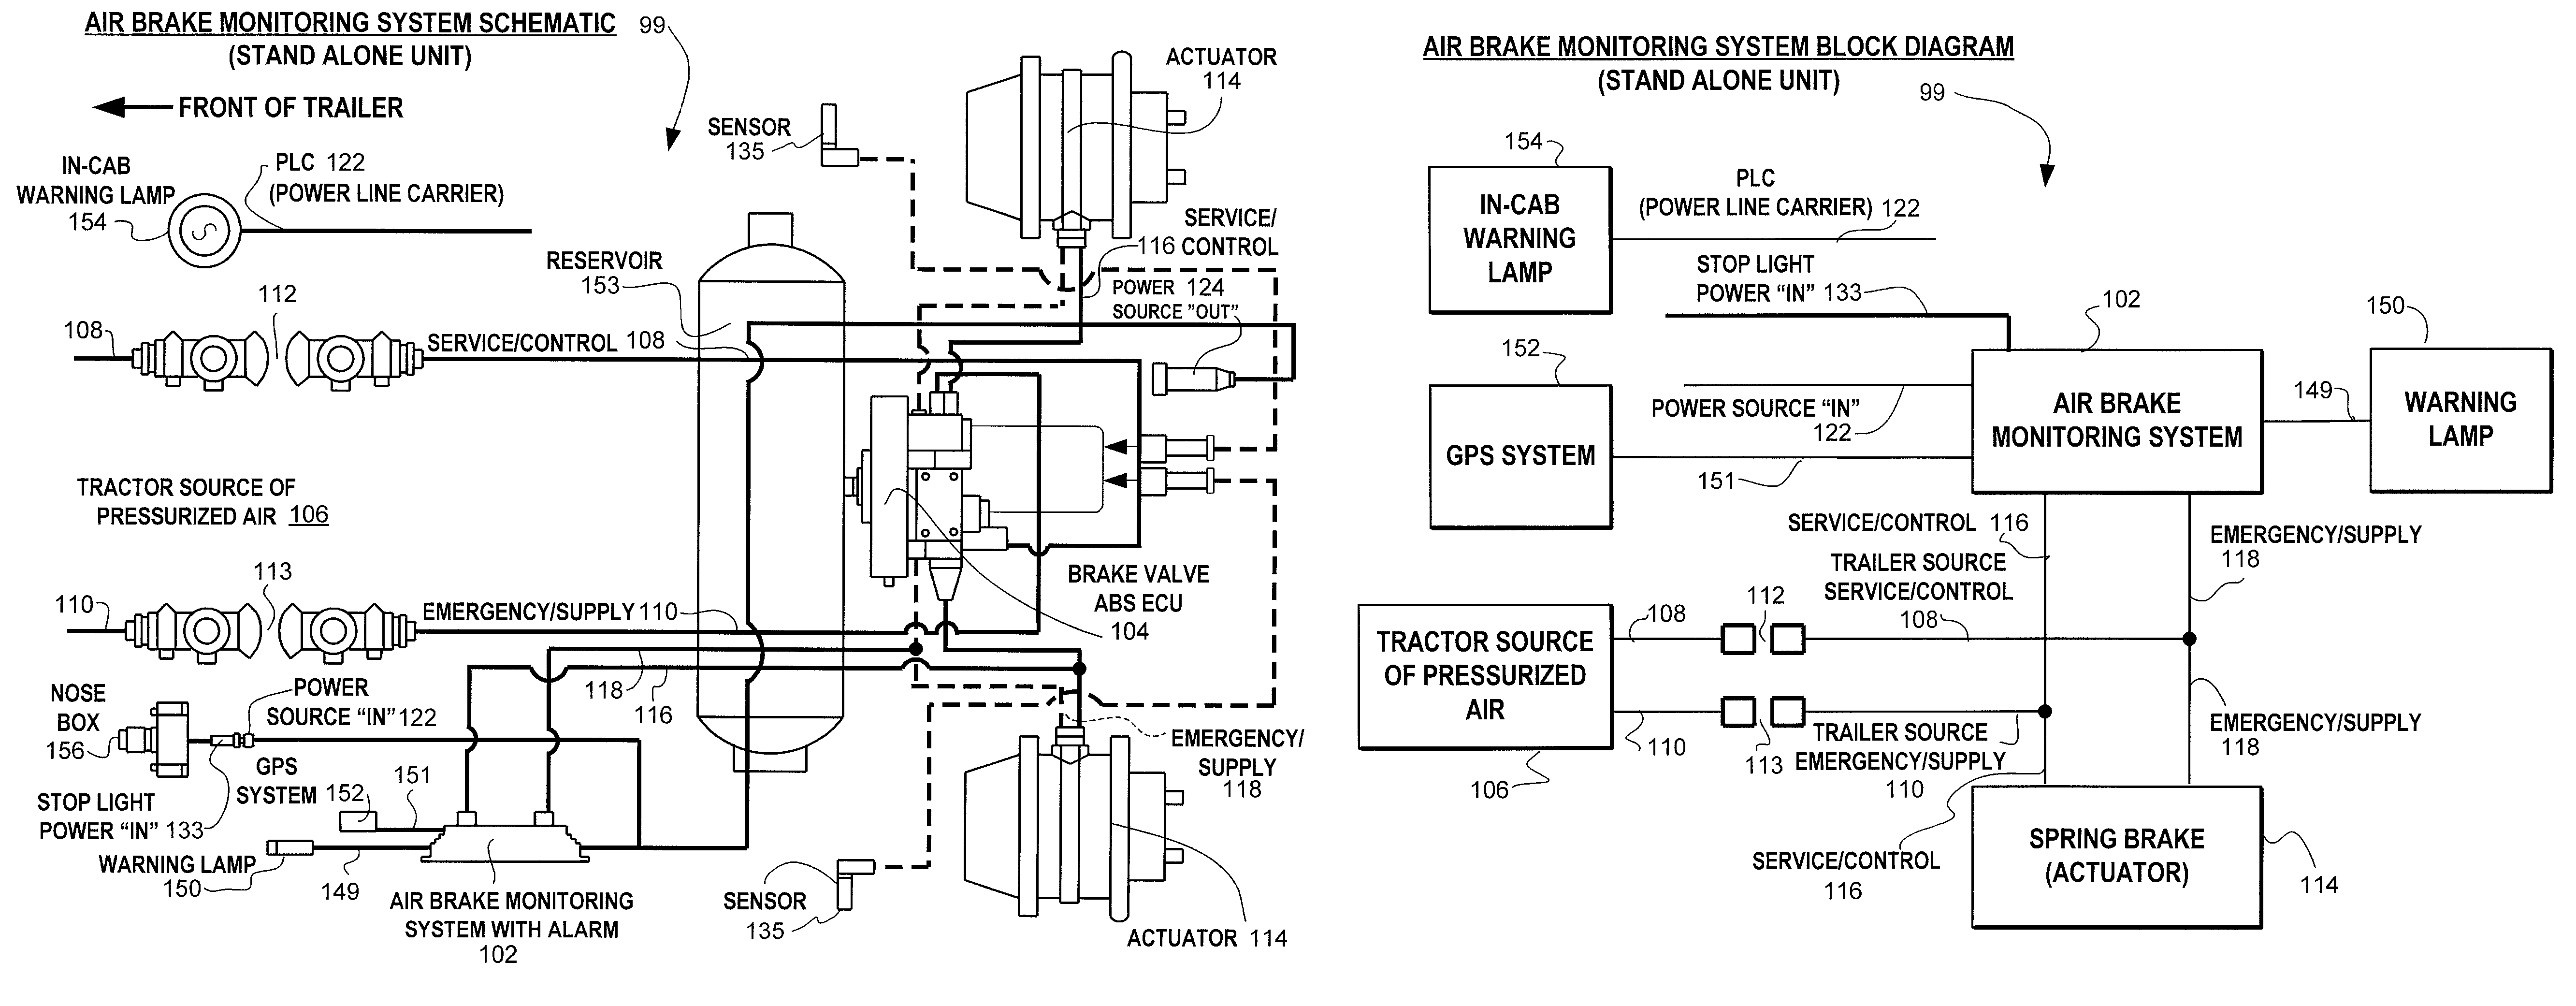 freightliner-wabco-abs-ke-module-wiring-diagram-7 Wabco Trailer Abs Wiring Diagram on meritor abs wiring diagram, wabco air suspension wiring-diagram, fl70 freightliner engine diagram, peterbilt suspension diagram, wabco air dryer diagram, 2007 jaguar xk thermostat housing diagram, trailer air system diagram, haldex abs wiring diagram, wabco air brake system diagram, wabco abs brake valve, semi trailer parts diagram, wabco abs cable, wabco abs codes,